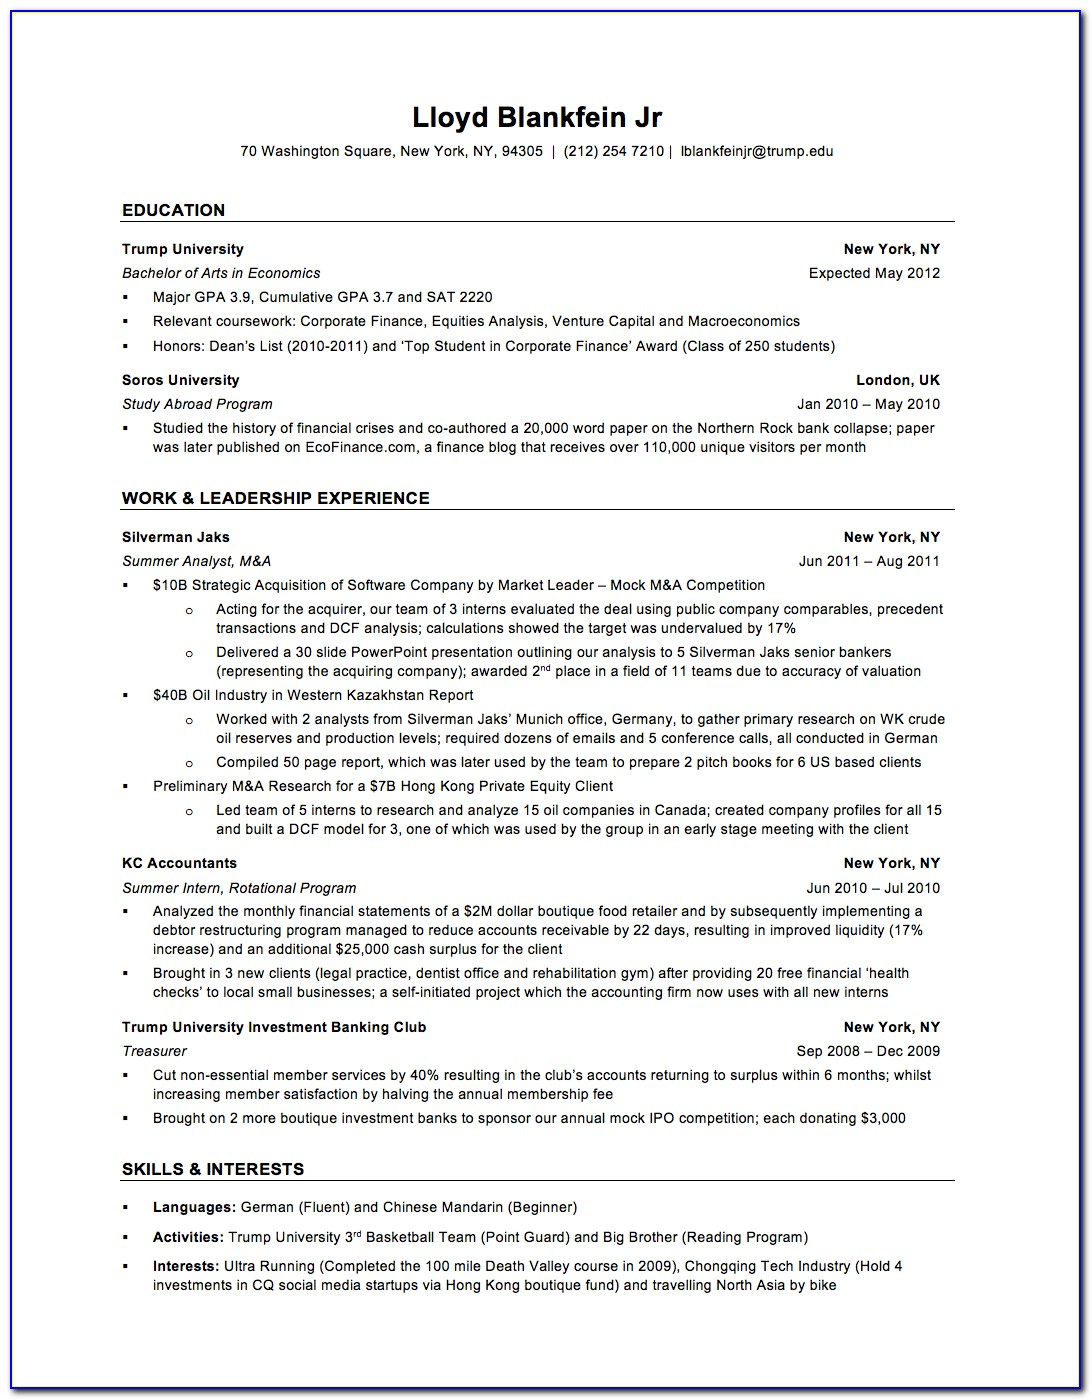 Resume Example For Banking Jobs